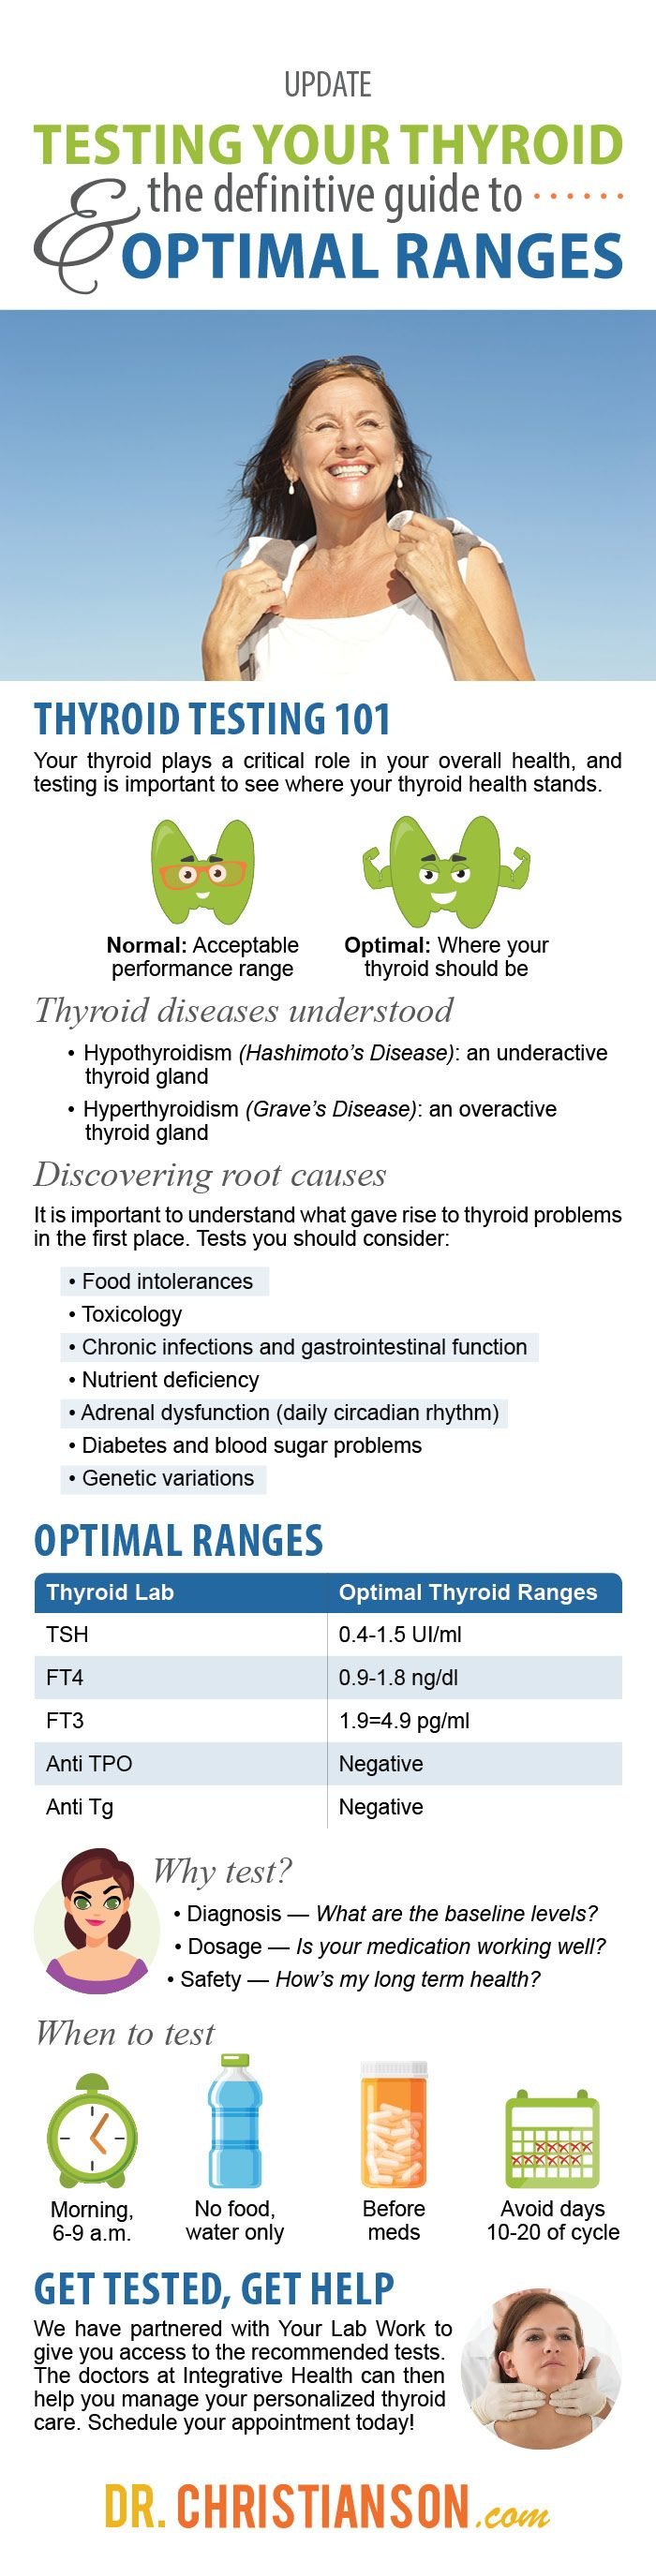 Testing Your Thyroid The Definitive Guide To Optimal Manual Guide